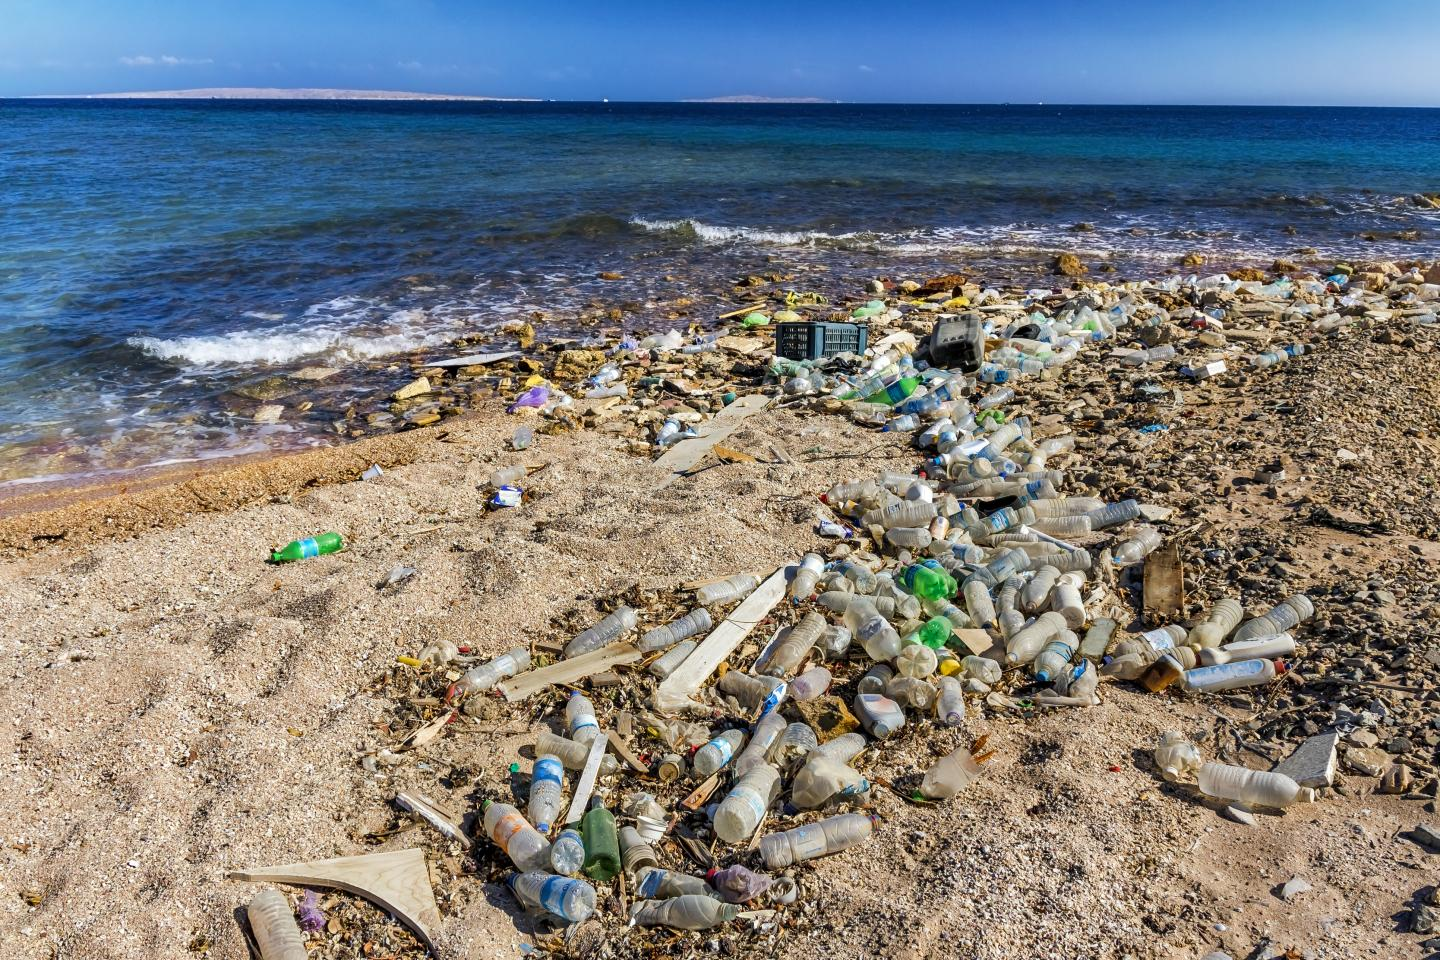 Garbage in the Beach and beautiful seascape in background, Egypt, Red Sea